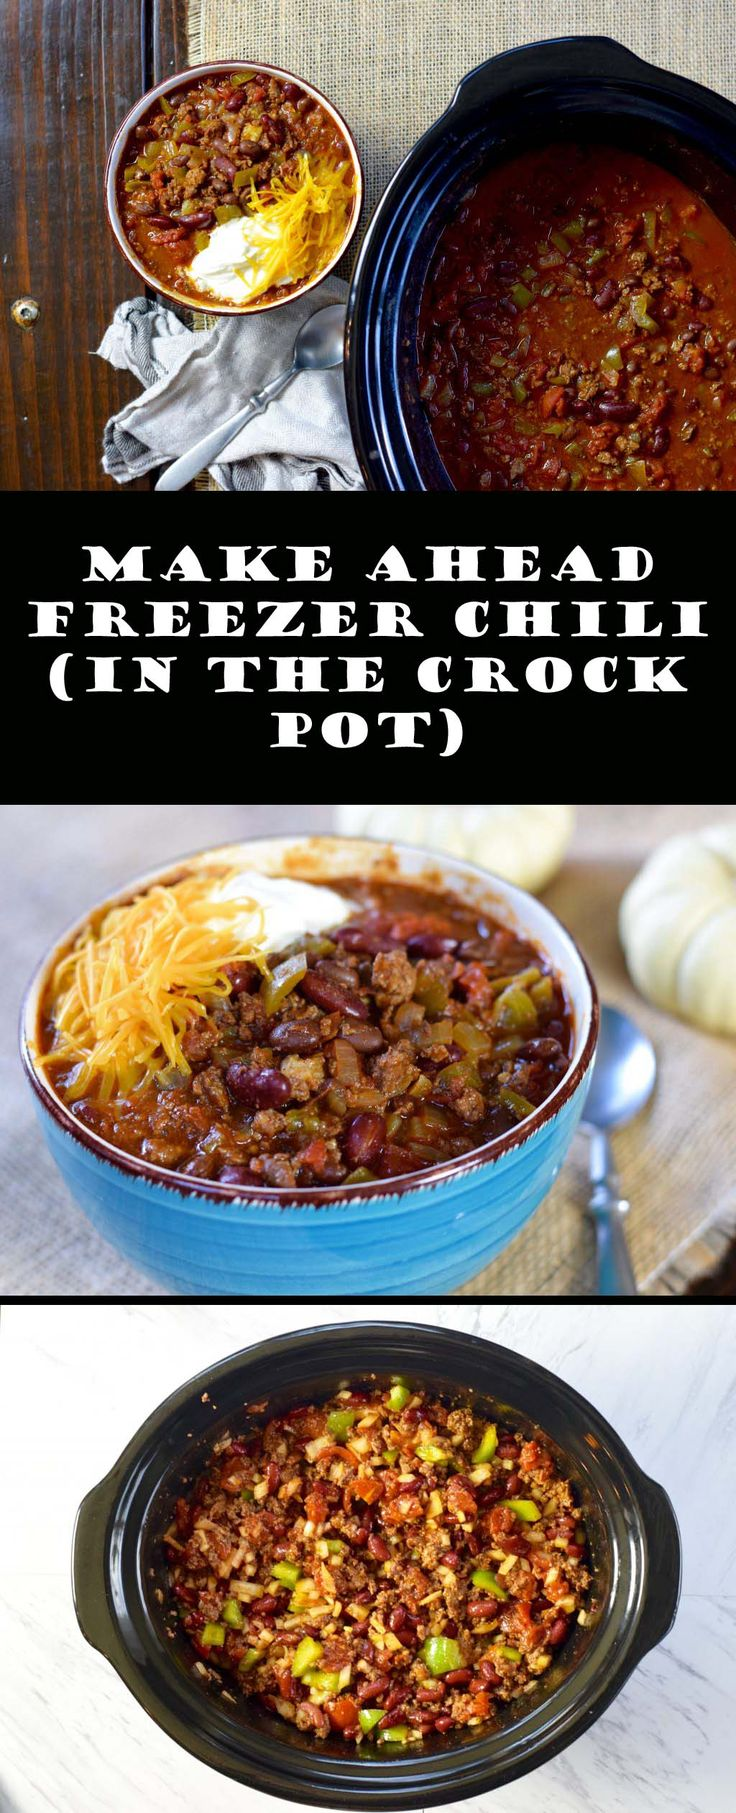 This Make Ahead Freezer Chili comes together quickly and cooks on low heat all day in your crock pot. Serve this rich and robust chili on a cold winter day